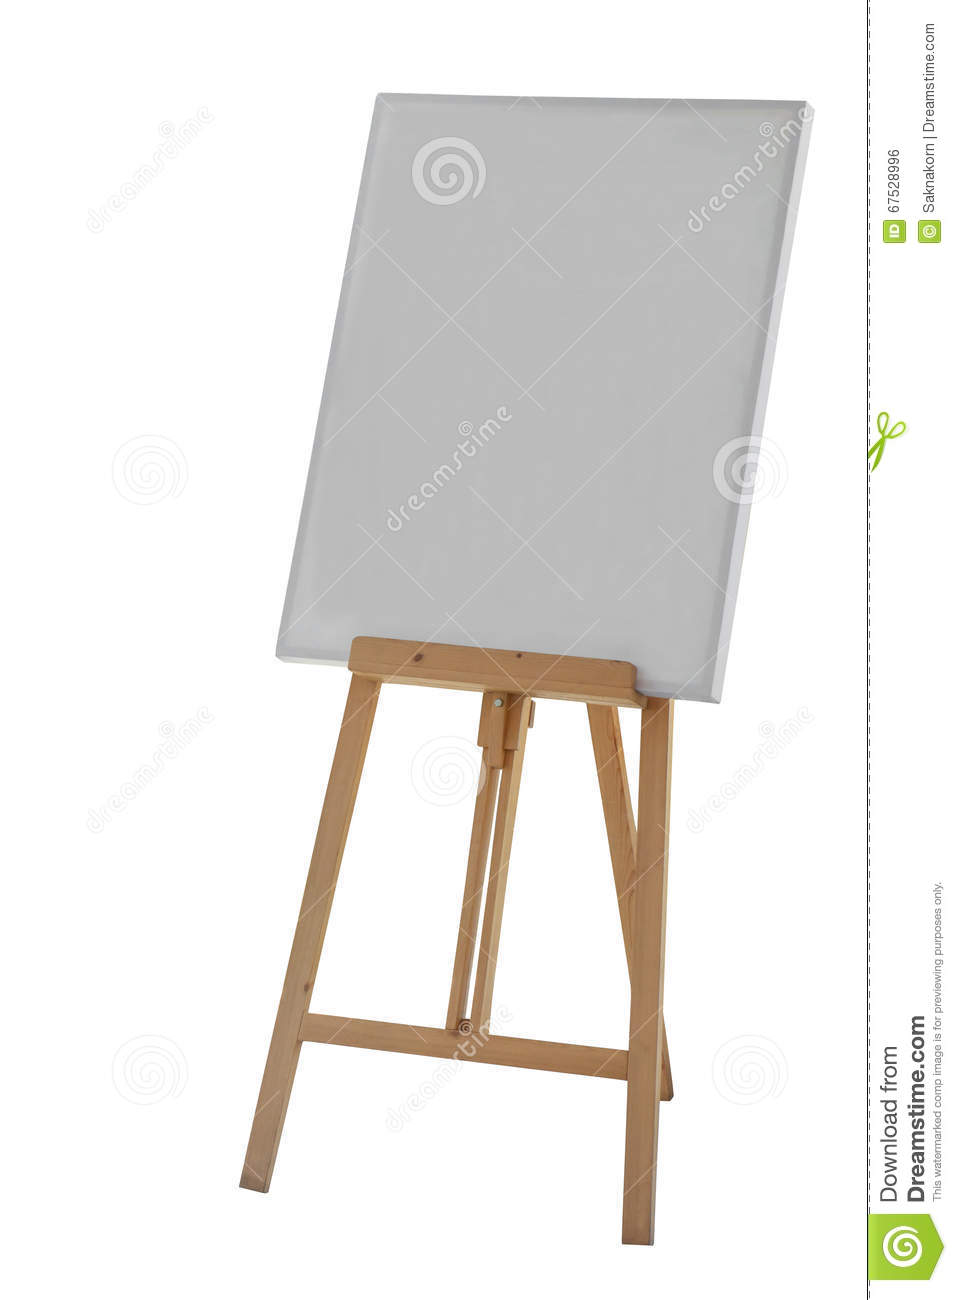 How to make a large poster board stand up